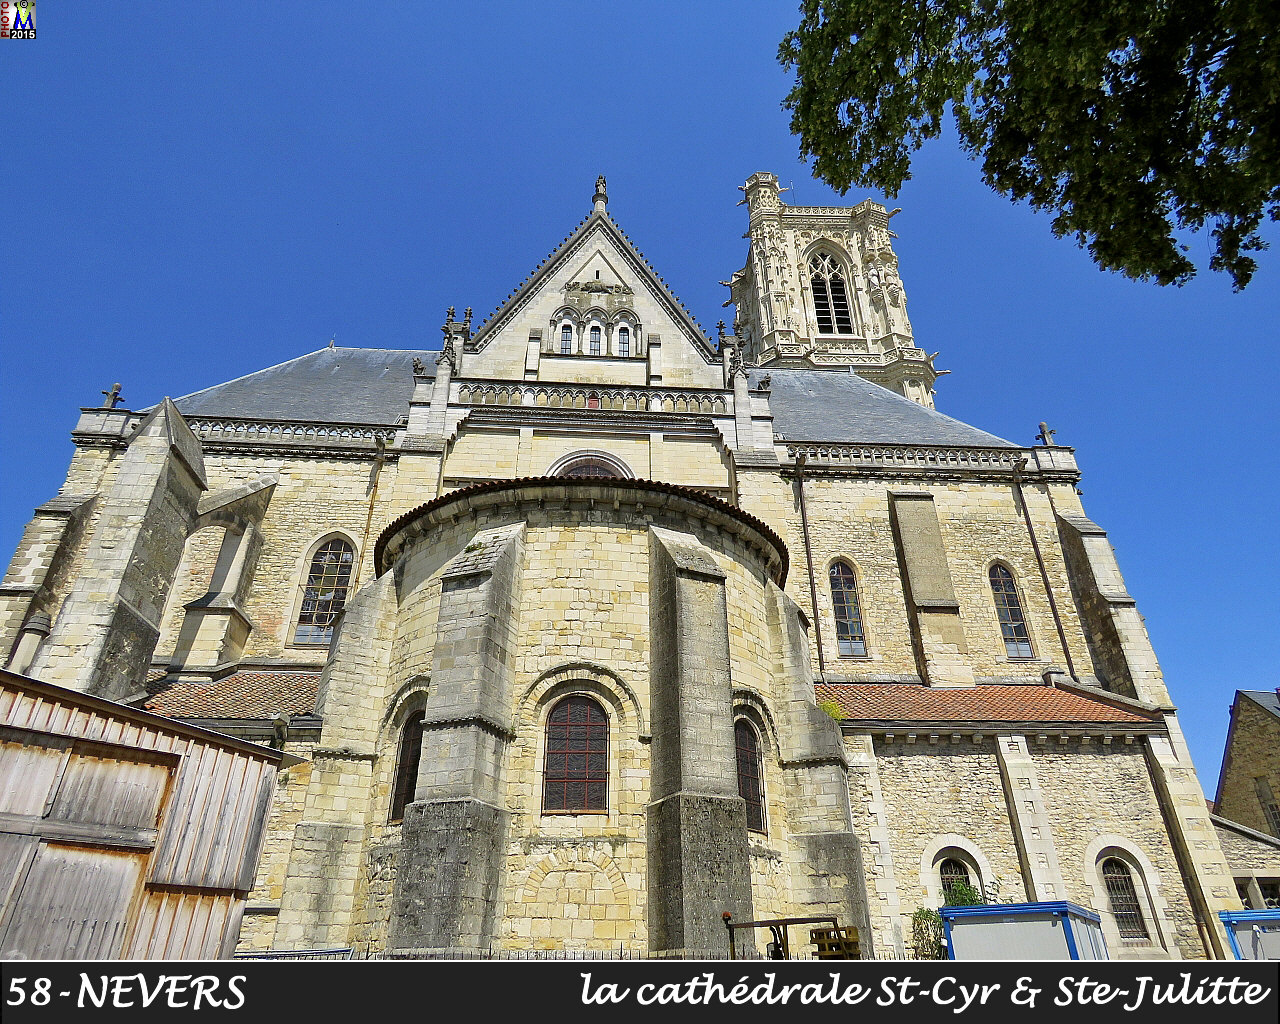 58NEVERS-cathedrale_102.jpg